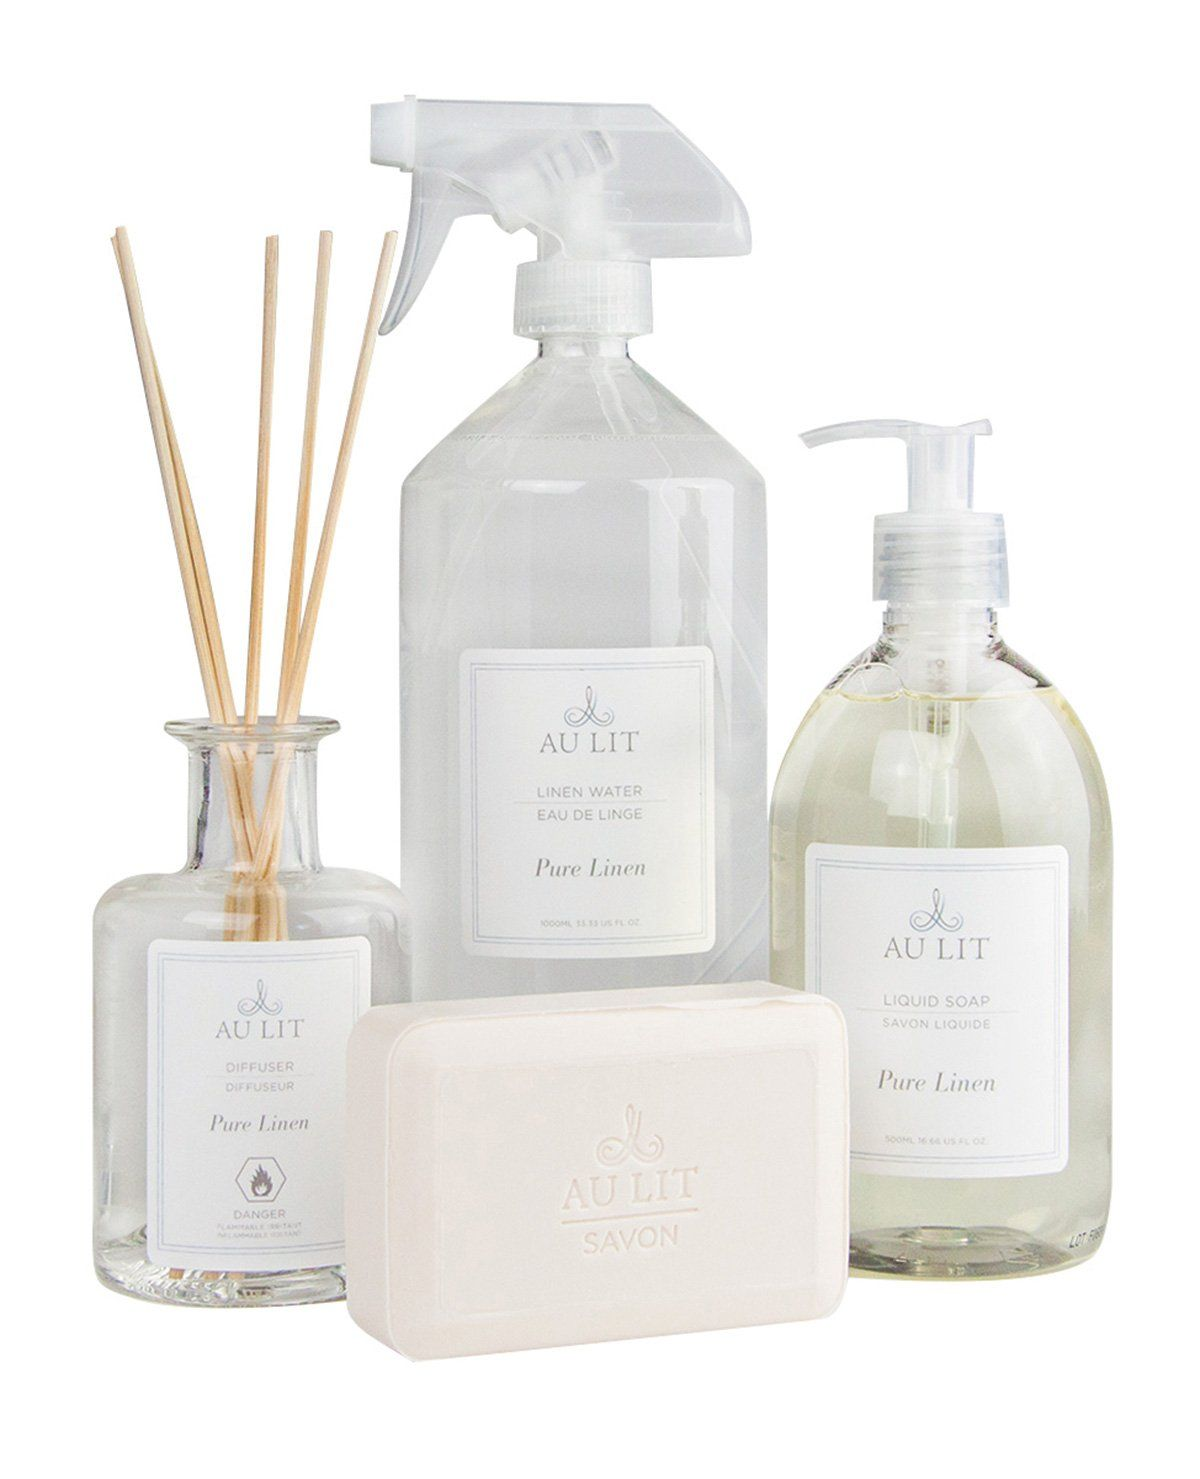 Pure Linen Scented Bath Set With Linen Water Au Lit Fine Linens